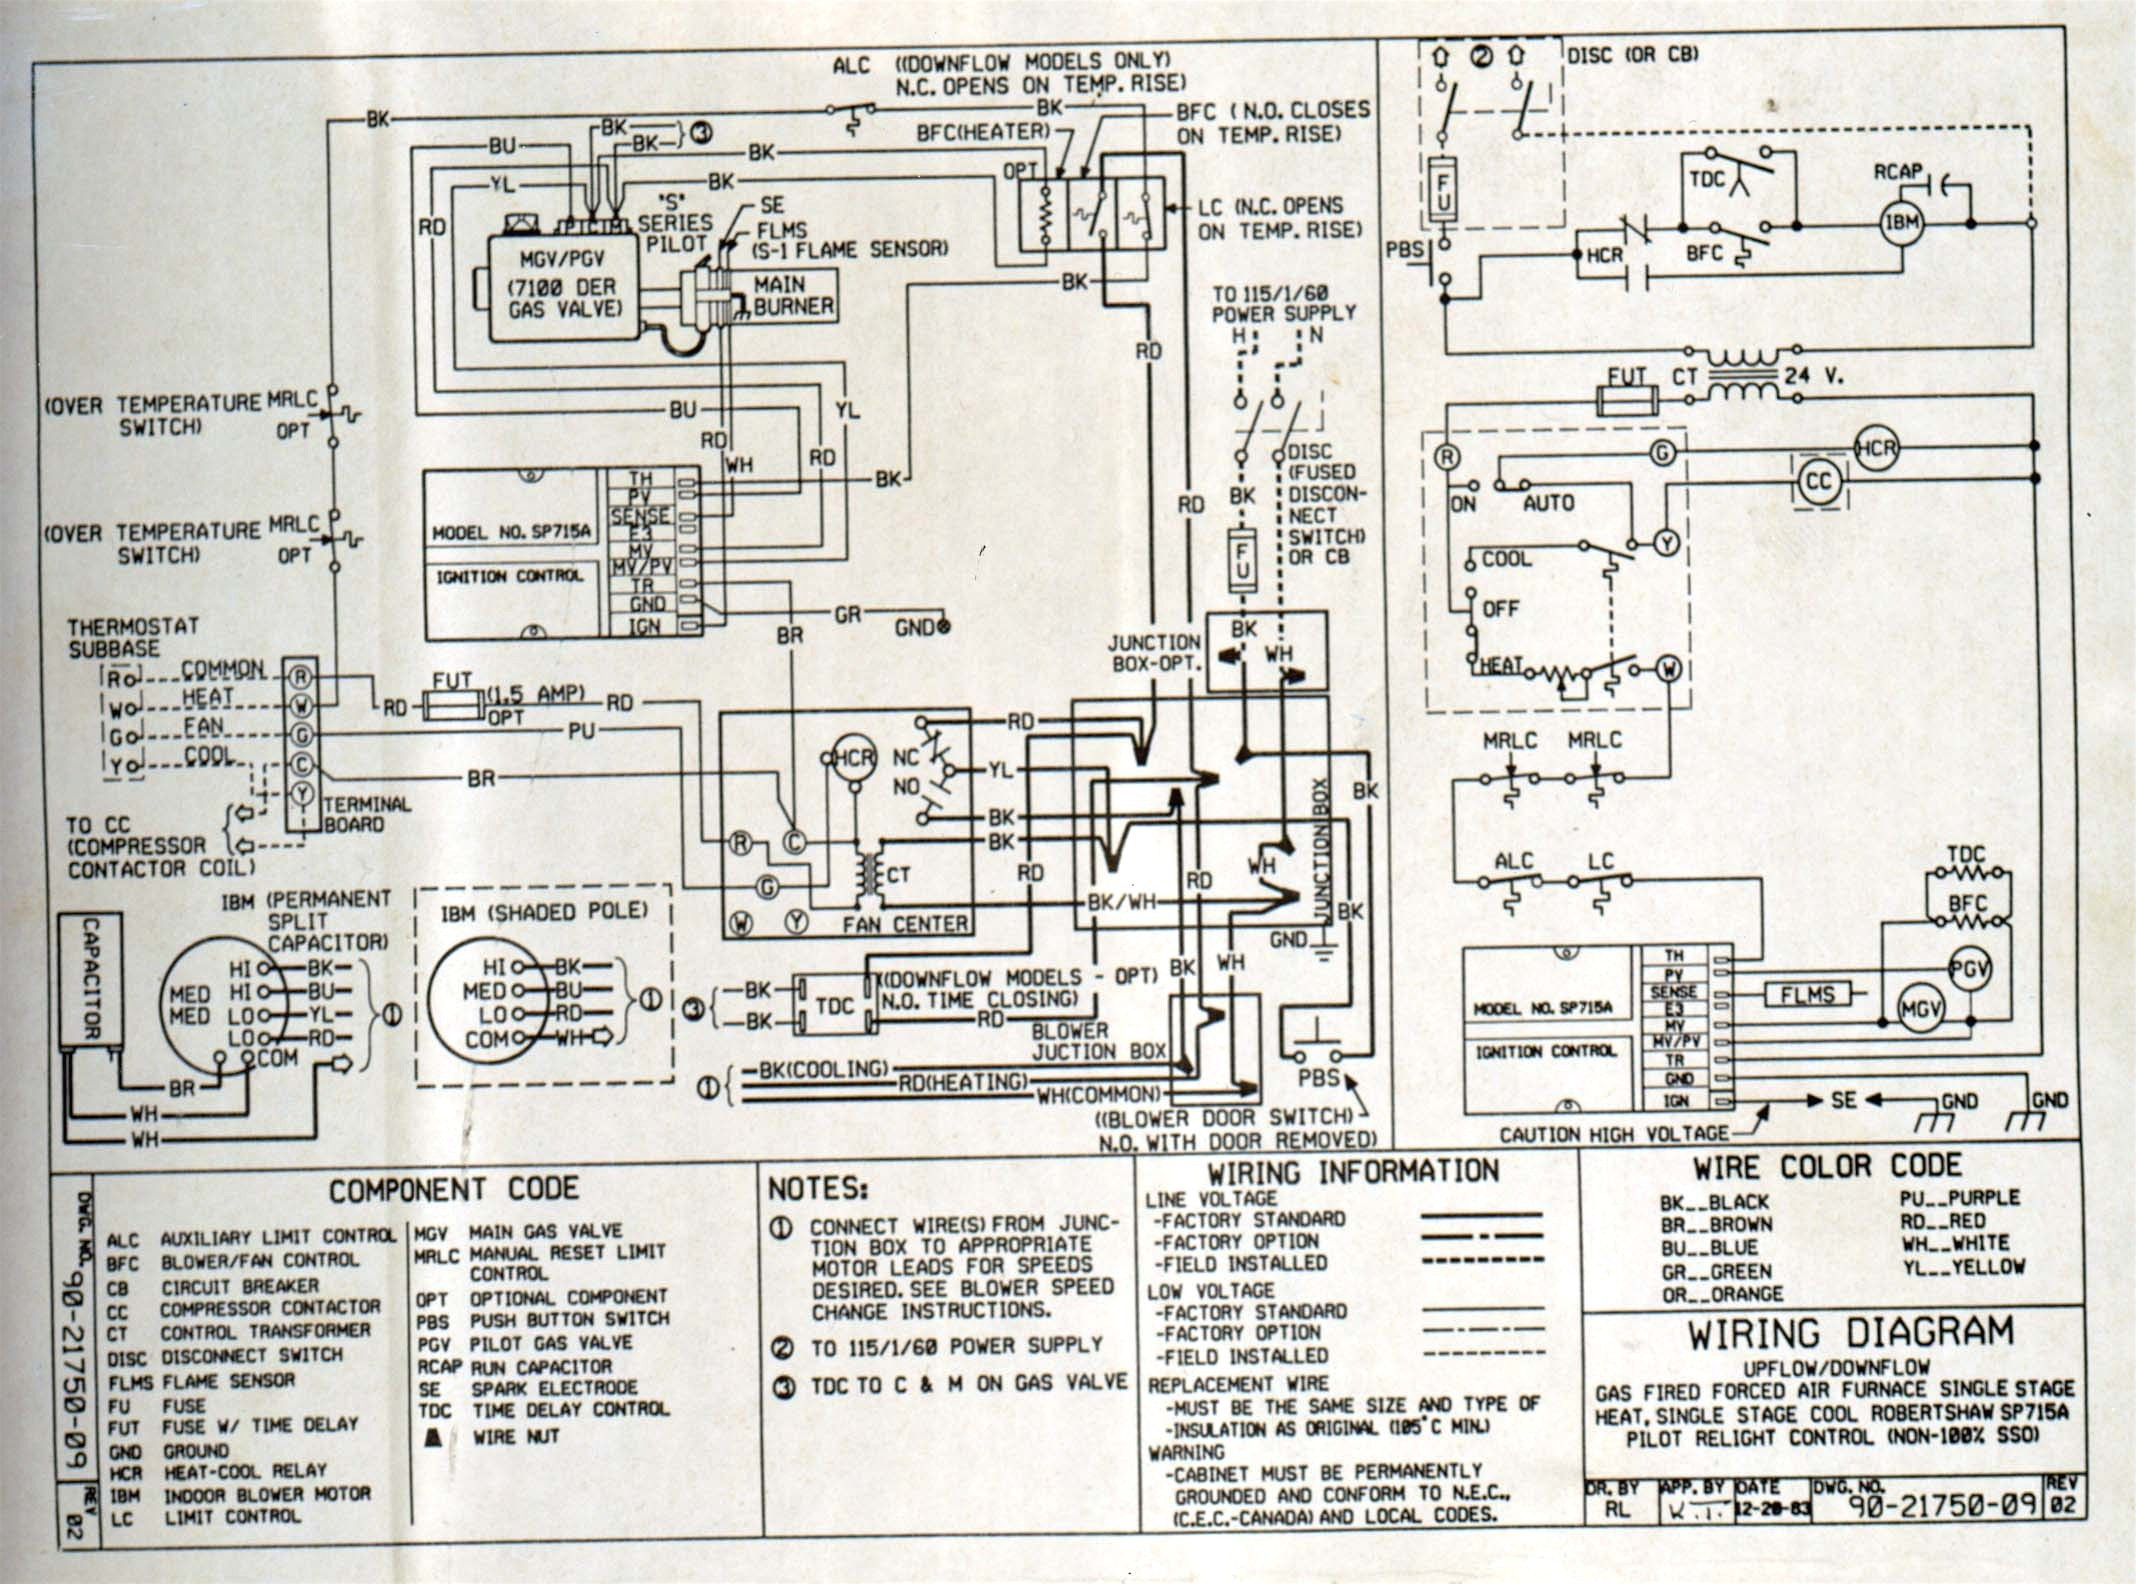 Goodman Ac Unit Wiring Diagram Collection | Wiring Collection